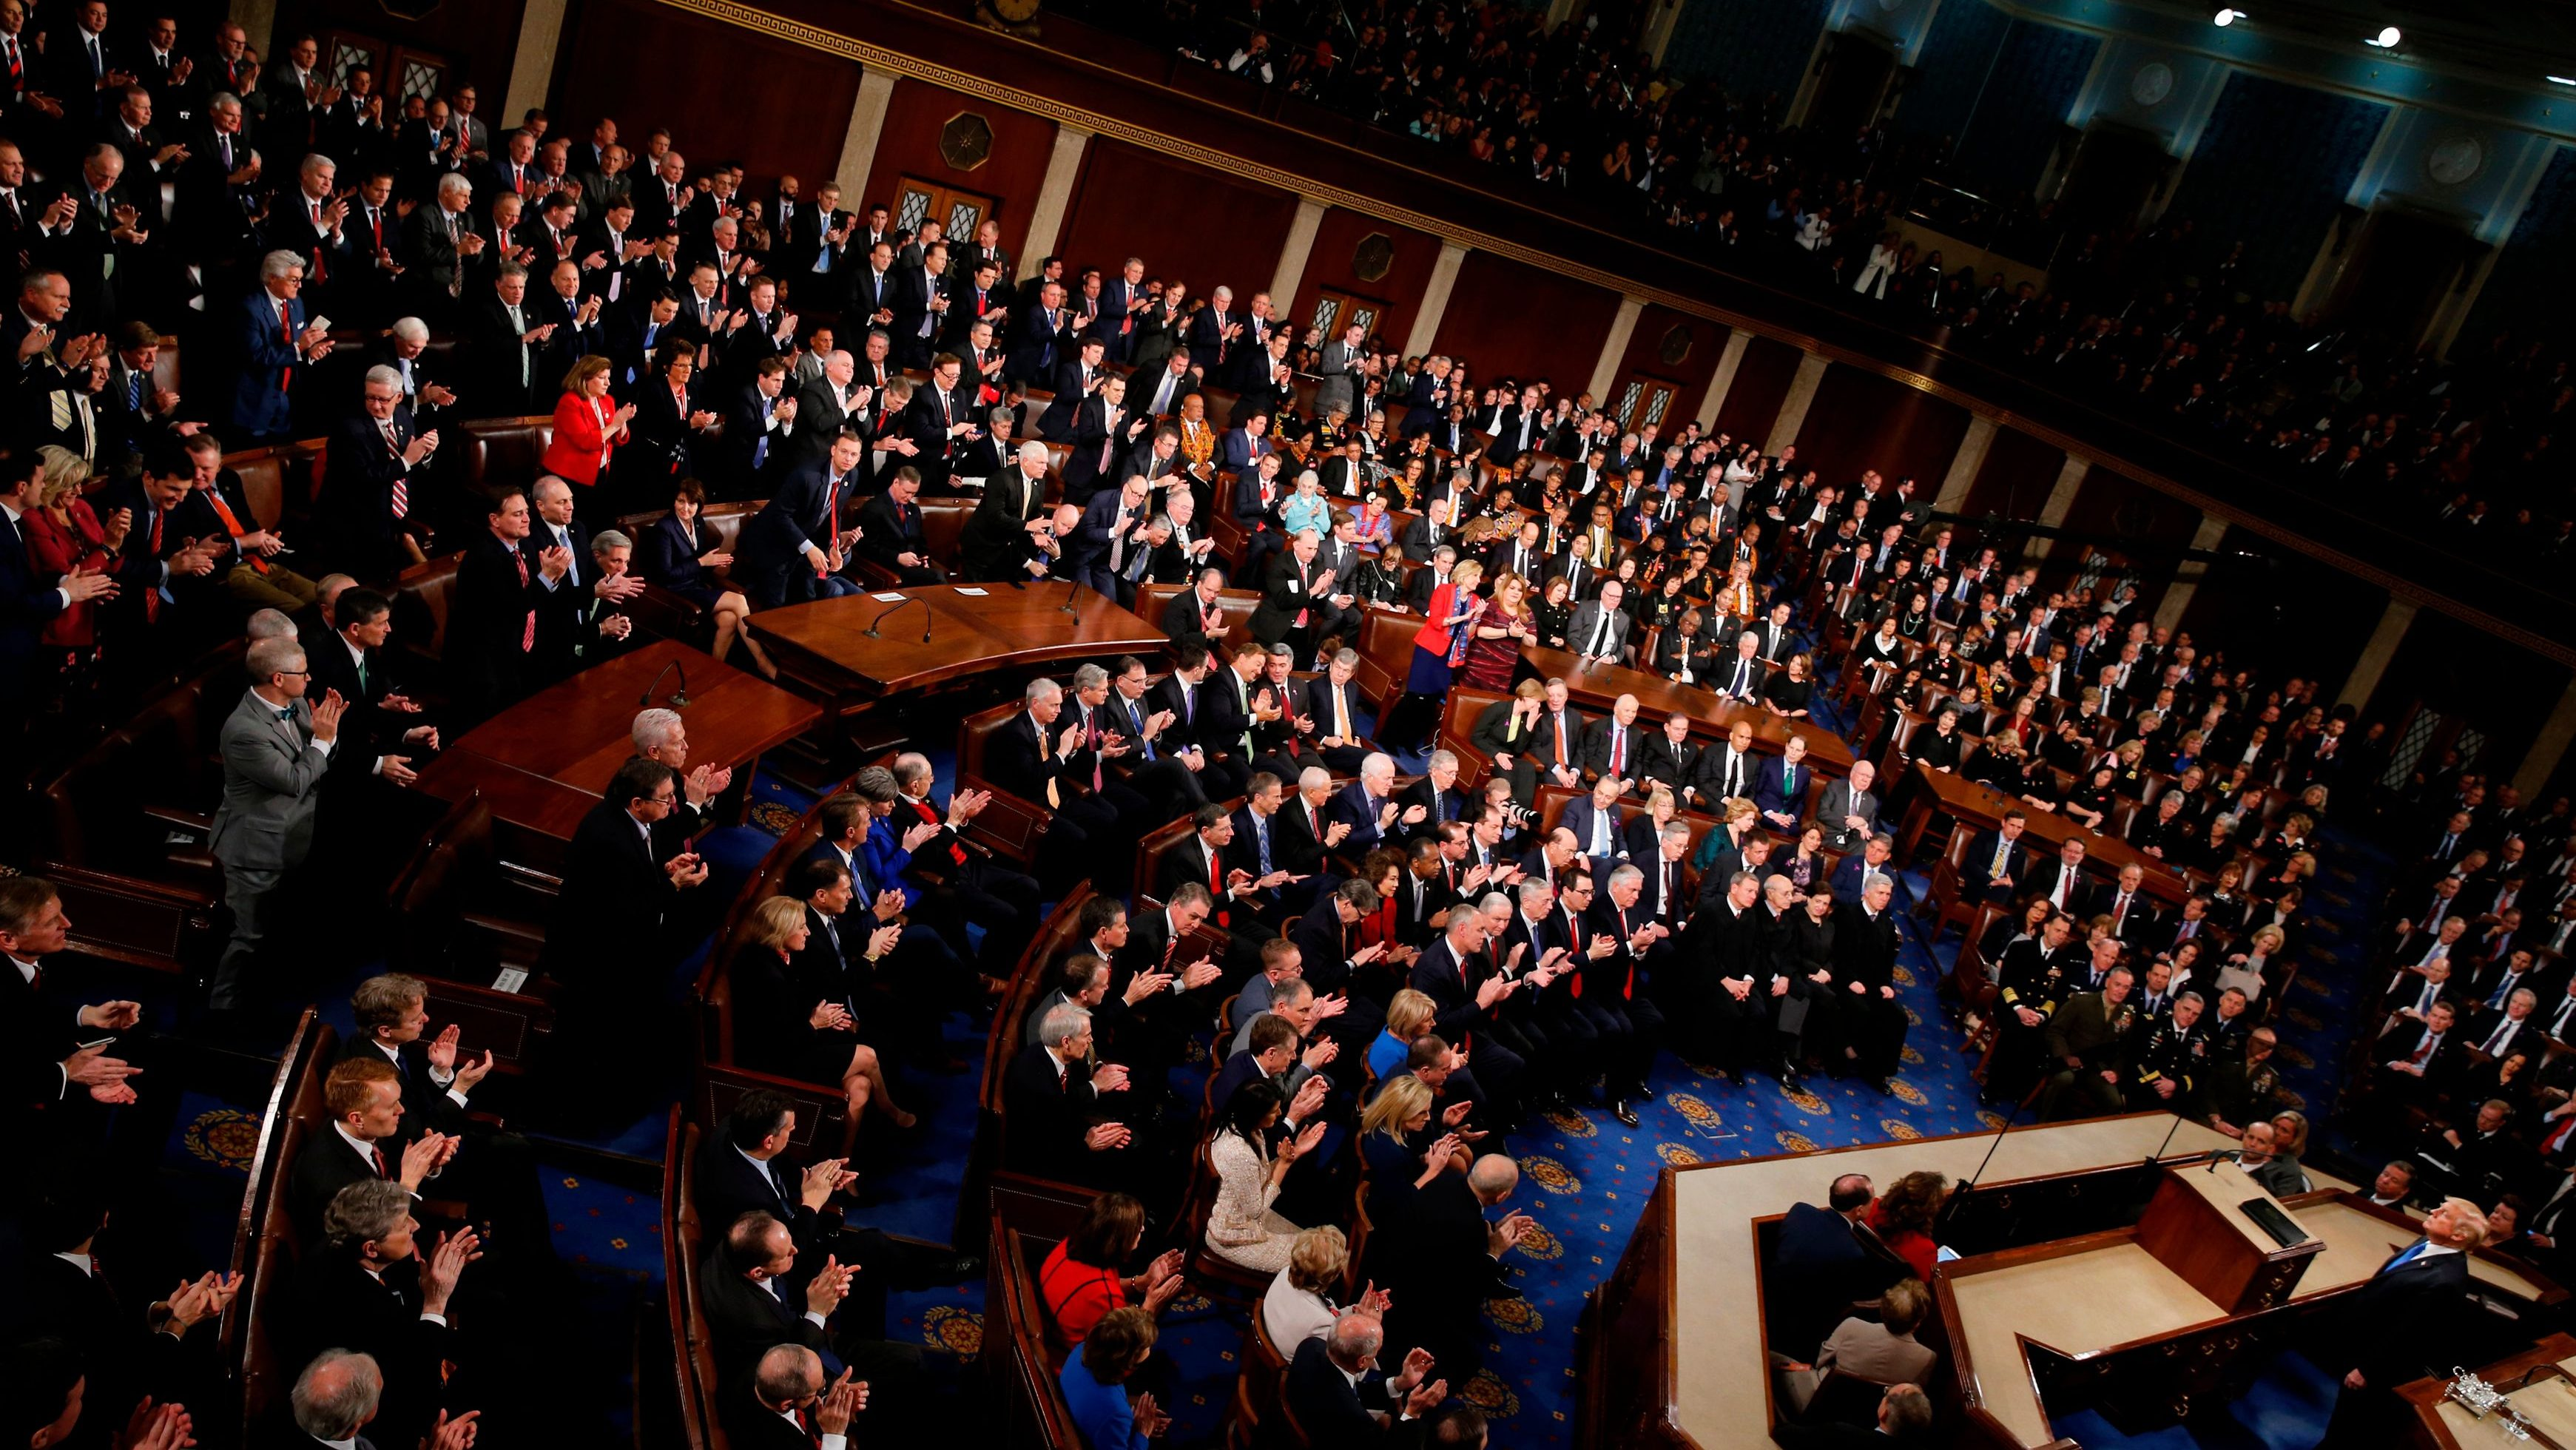 U.S. President Donald Trump delivers his State of the Union address to a joint session of the U.S. Congress on Capitol Hill in Washington, U.S. January 30, 2018.